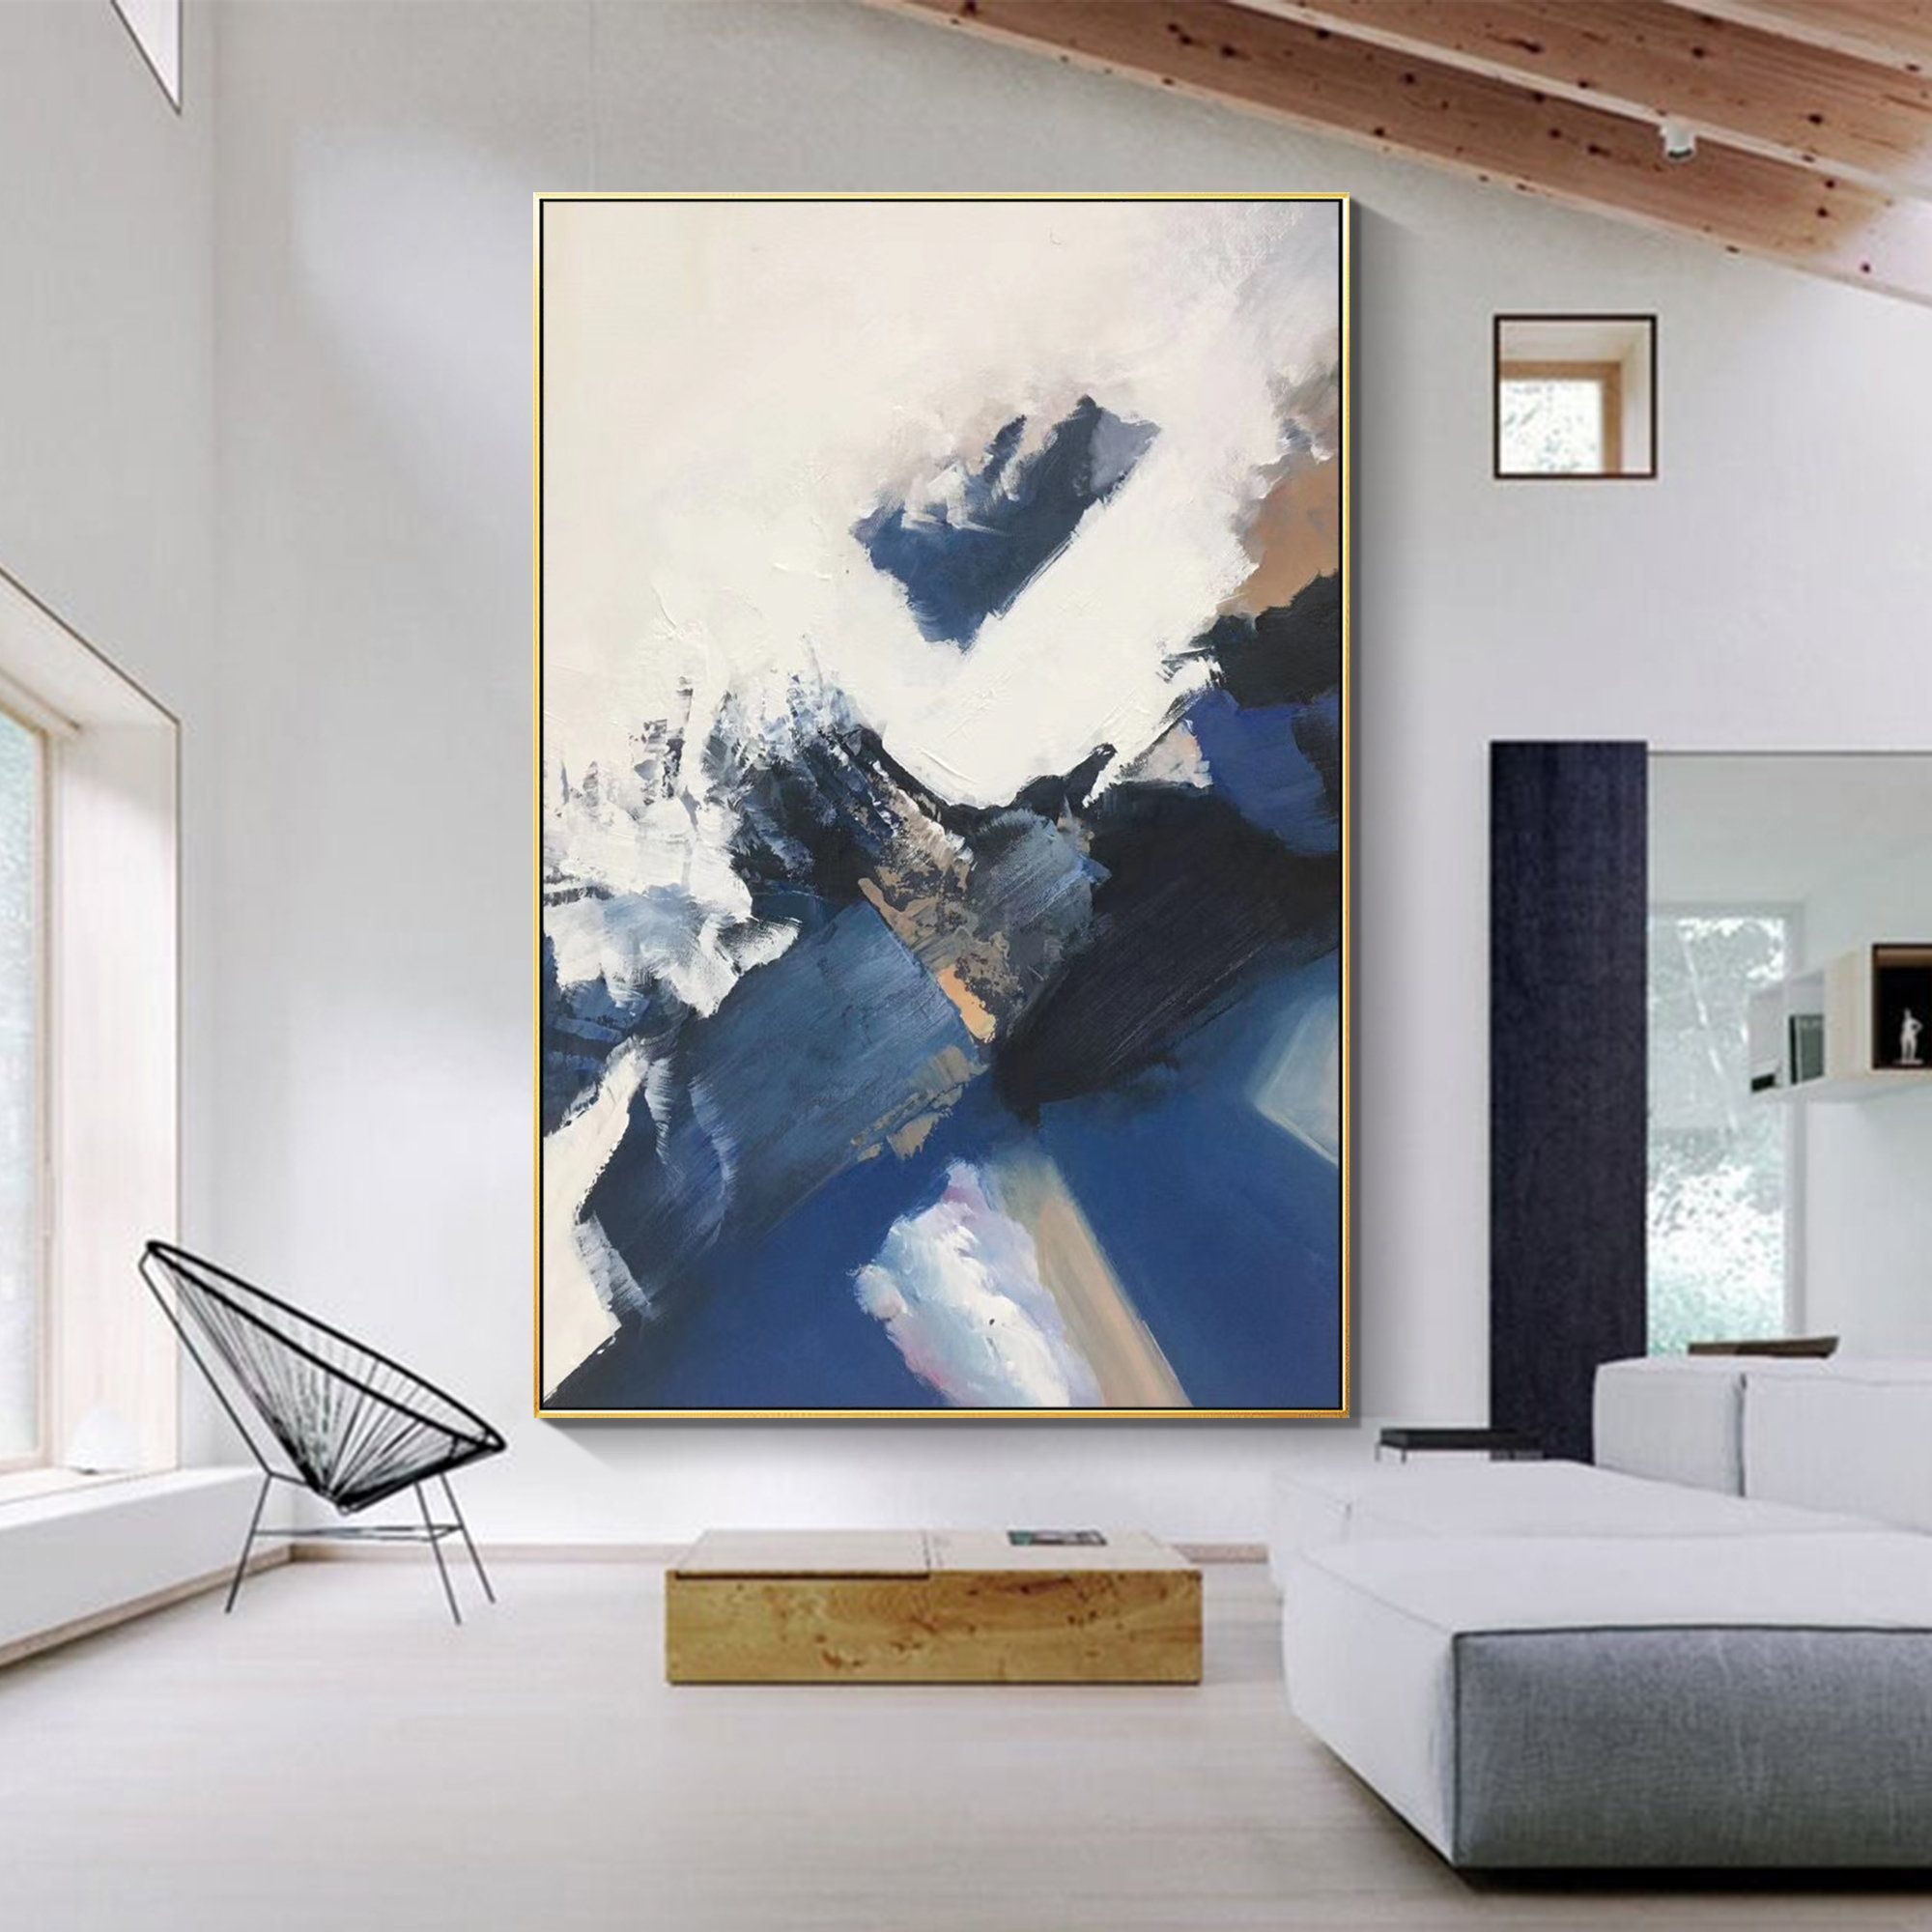 Modern Abstract Art Modern Ocean Art Oversized Painting Etsy In 2020 Large Modern Wall Art Large Abstract Wall Art Modern Art Abstract